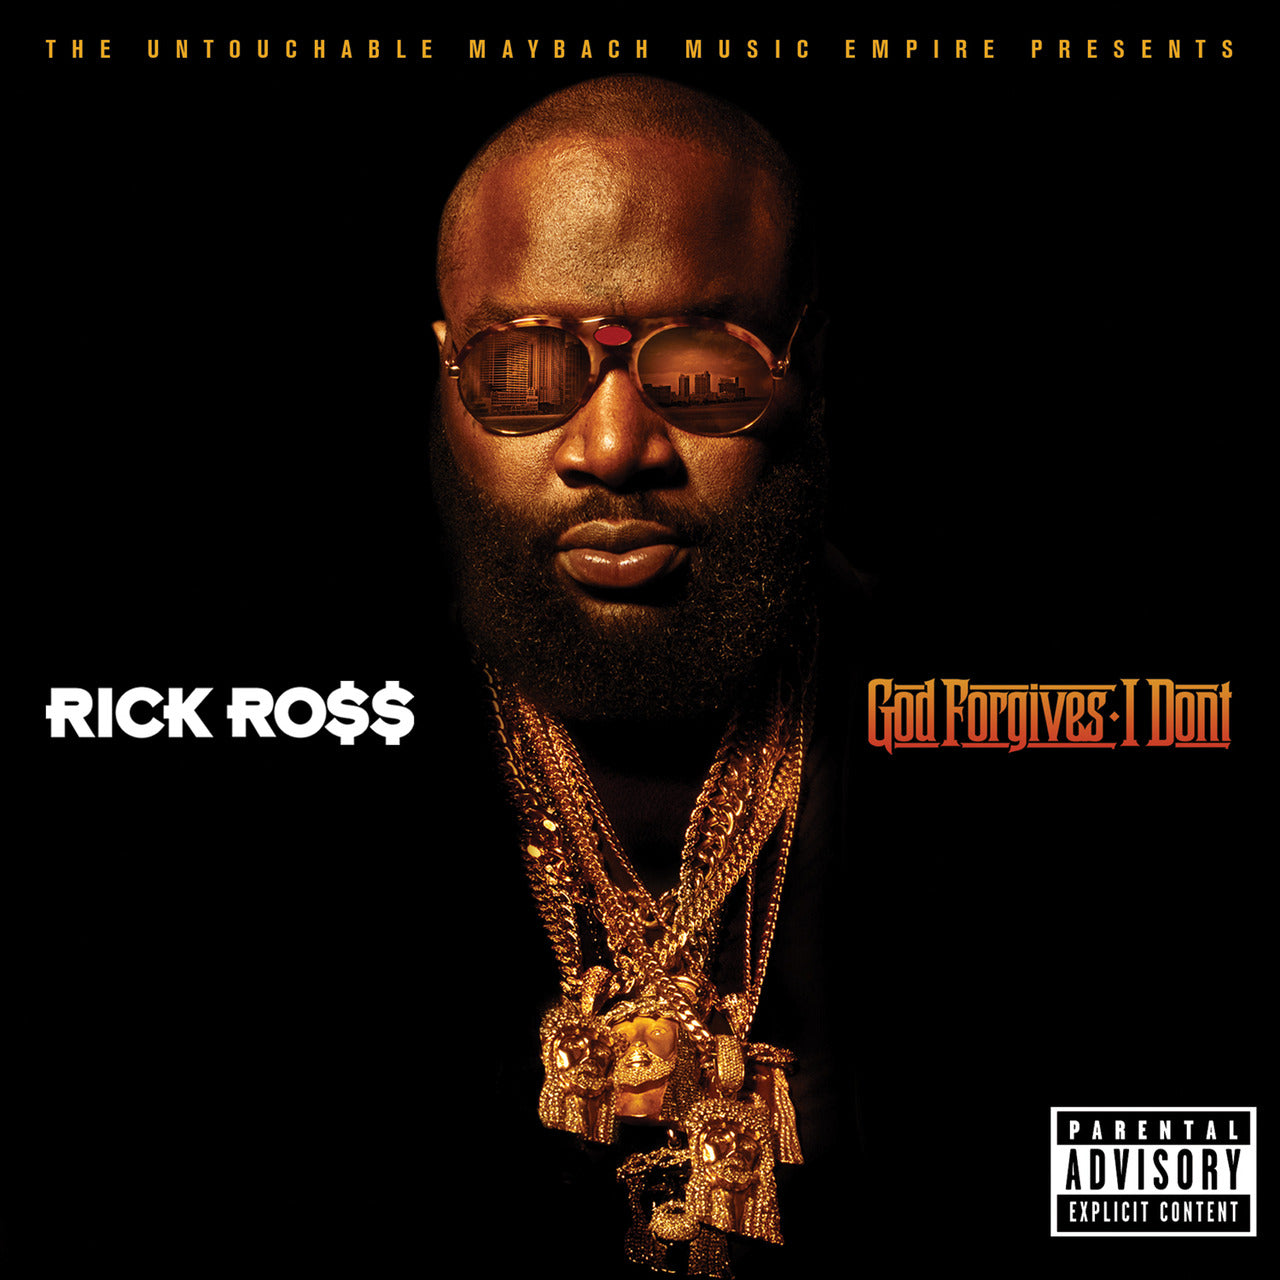 Gold Jesus Piece Necklaces worn by Rick Ross on his album Cover